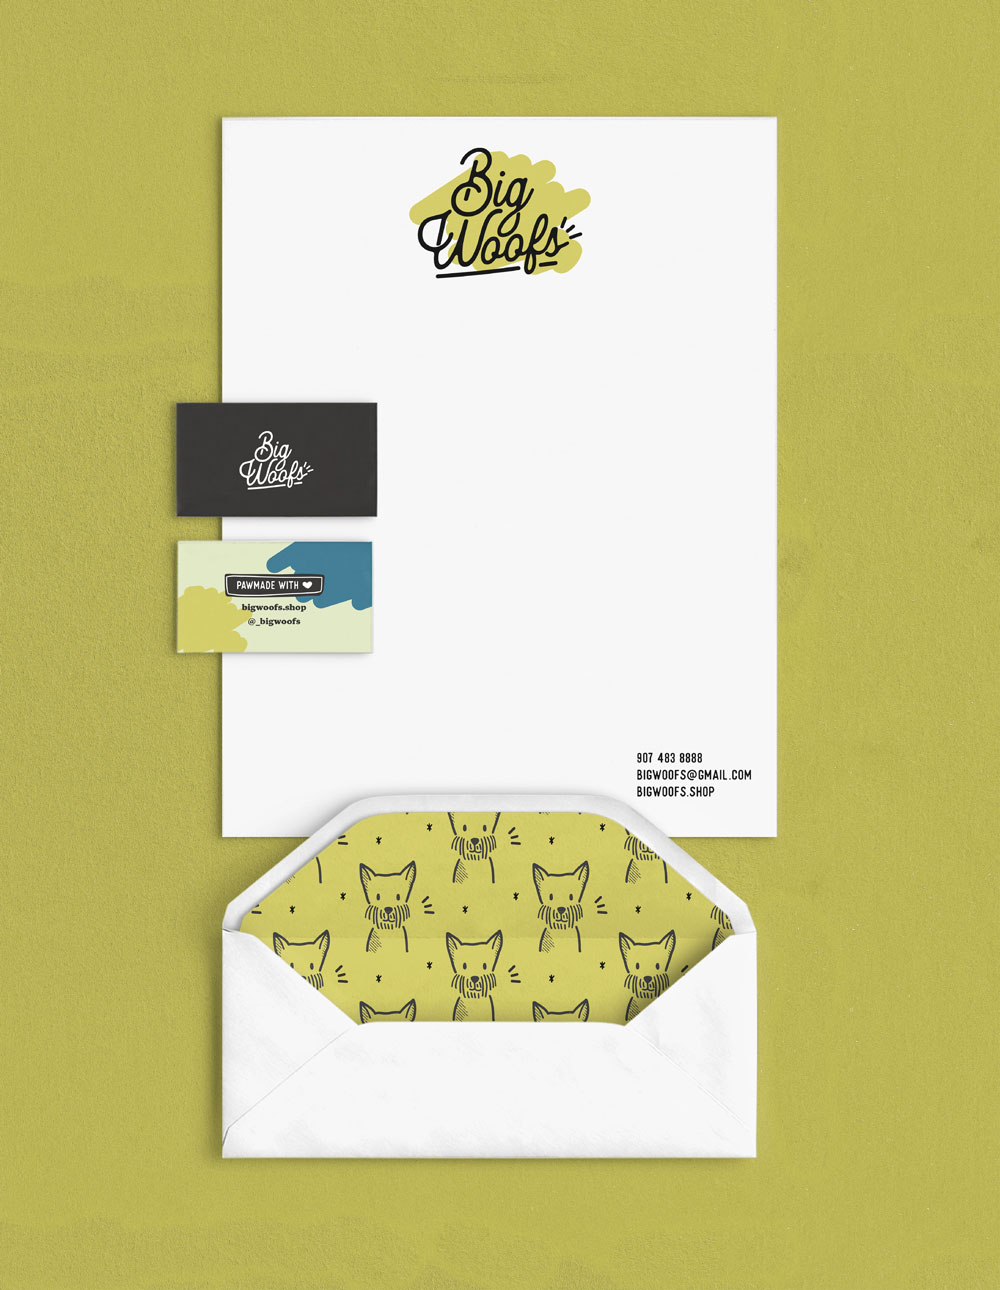 Big Woofs stationary, business card, and envelope